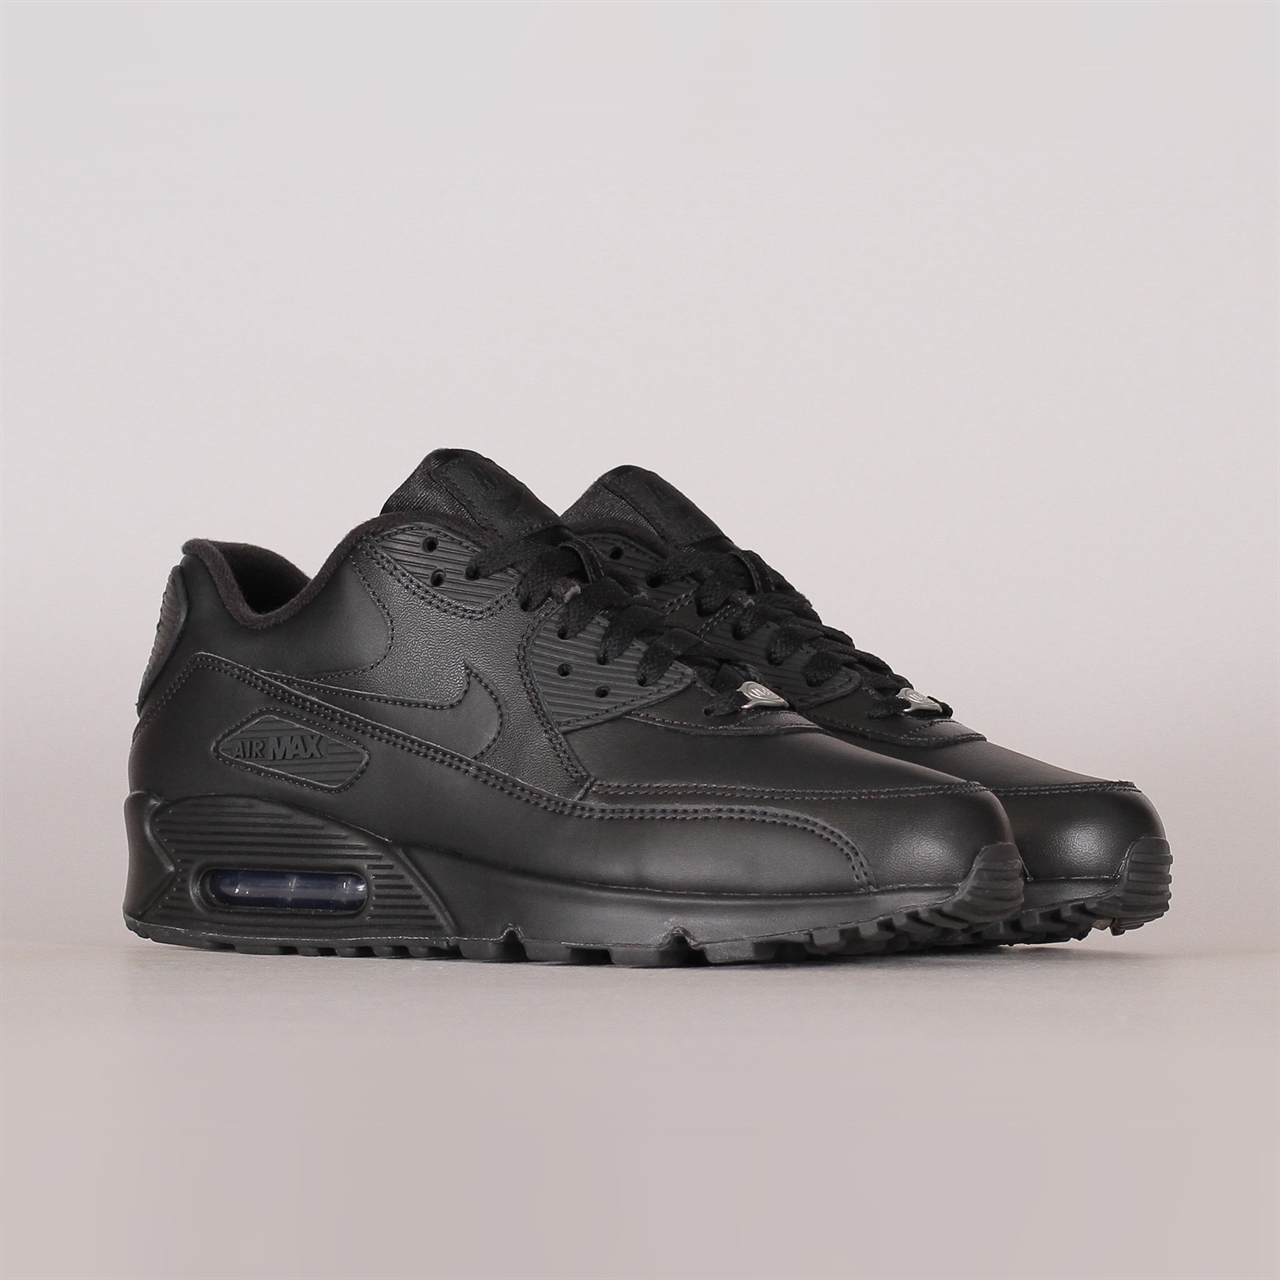 new product 0b178 0f169 Air Max 90 Leather (302519-001)